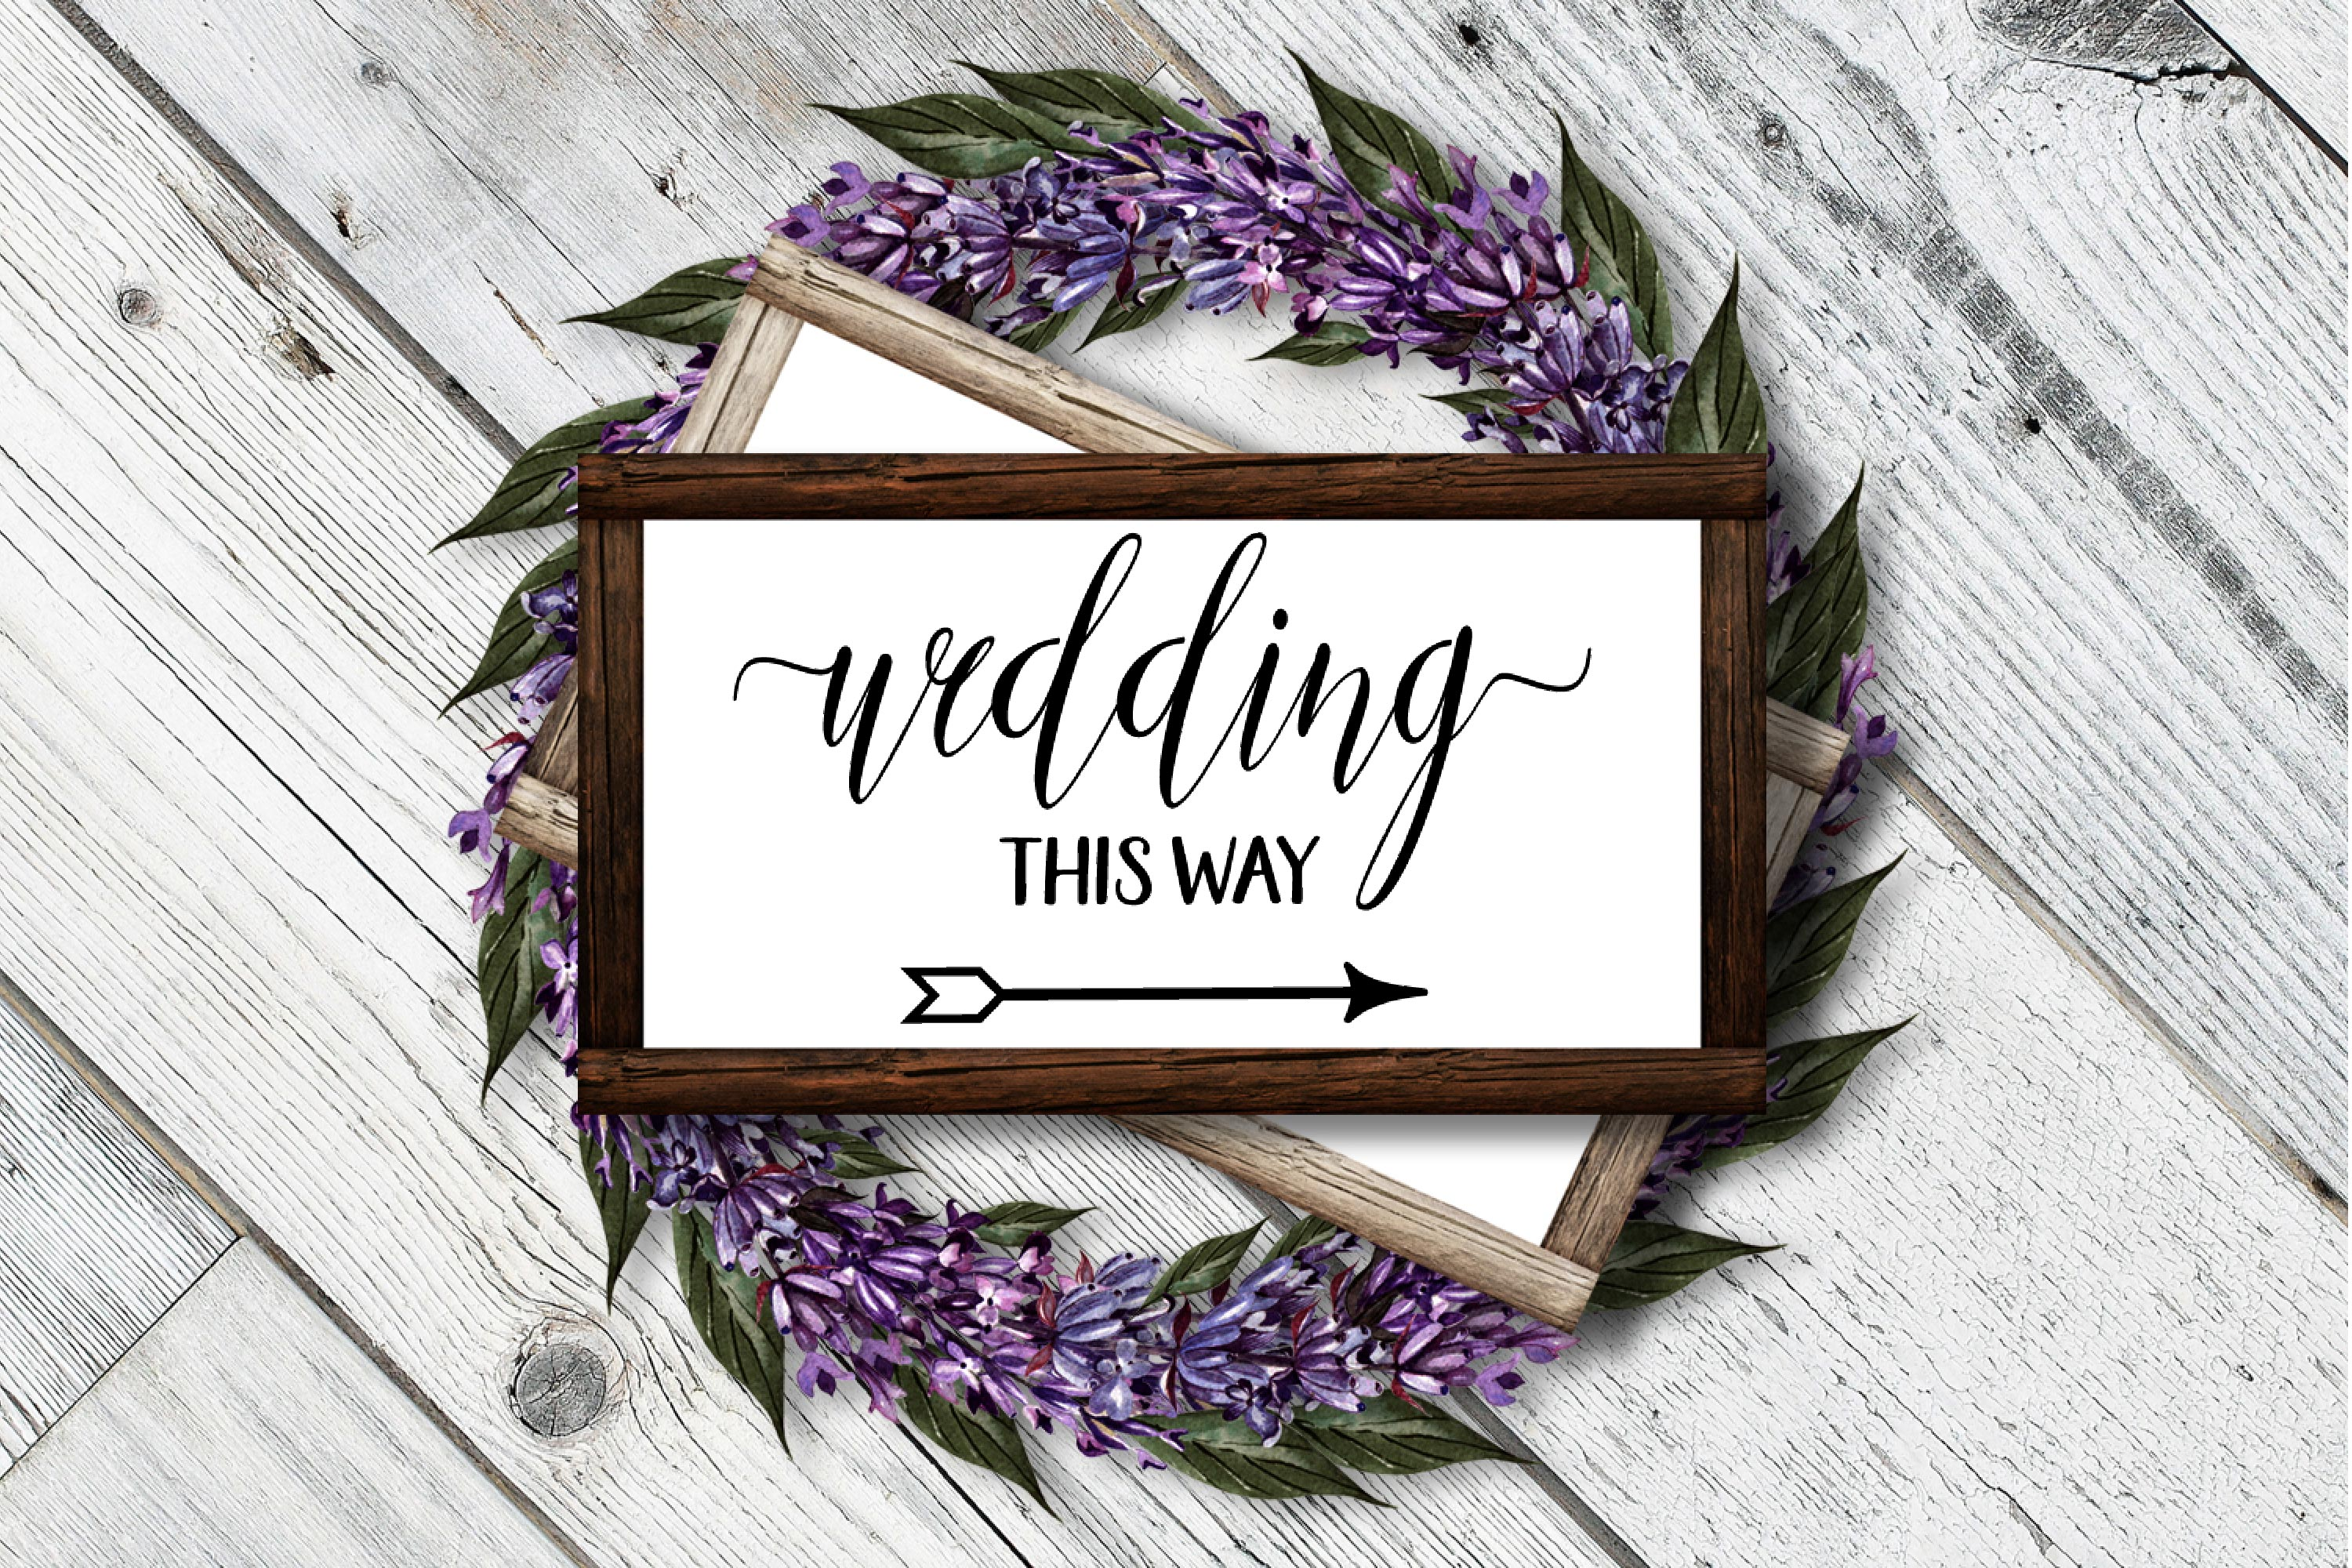 Download Free Wedding This Way Wedding File Graphic By Onceuponadimeyxe for Cricut Explore, Silhouette and other cutting machines.